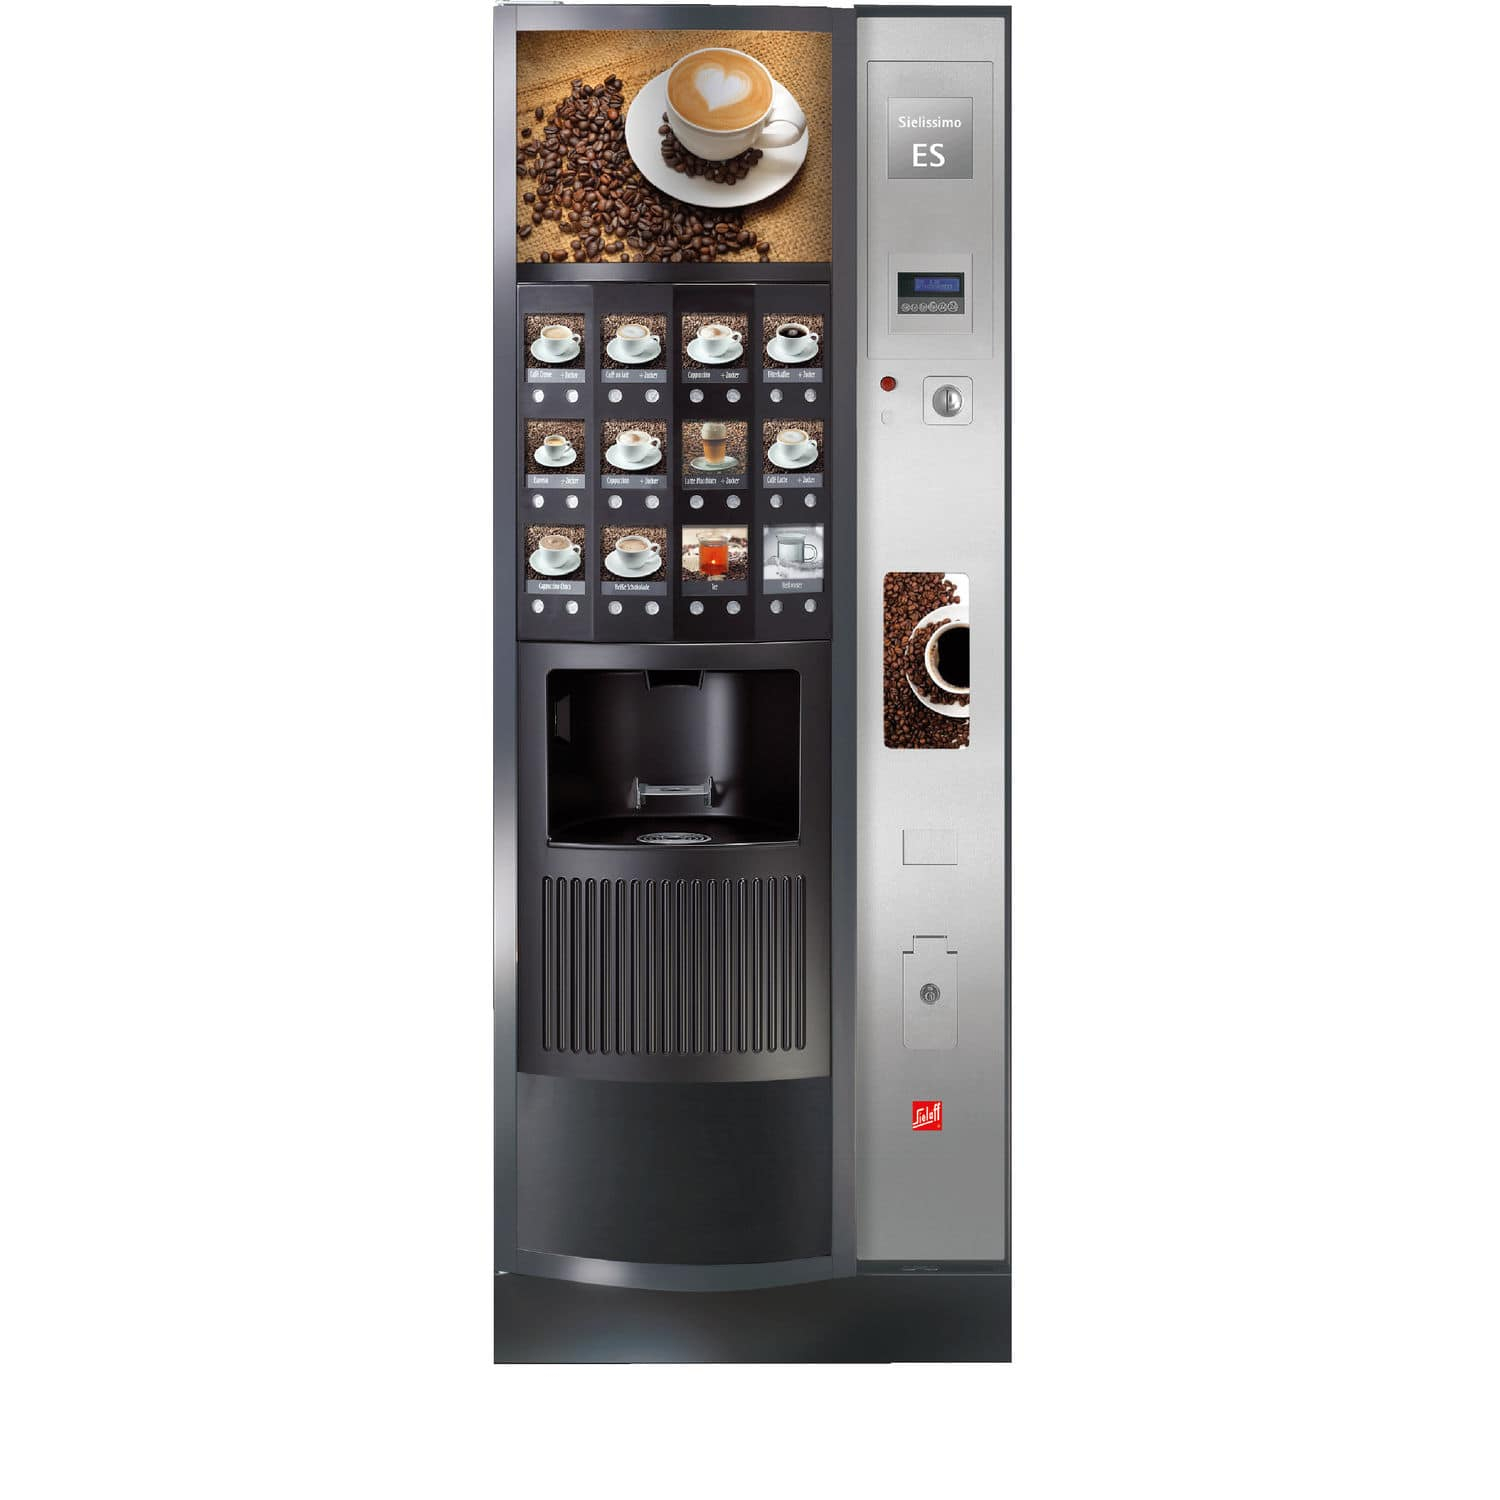 Coffee Dispenser Sielissimo Es Design